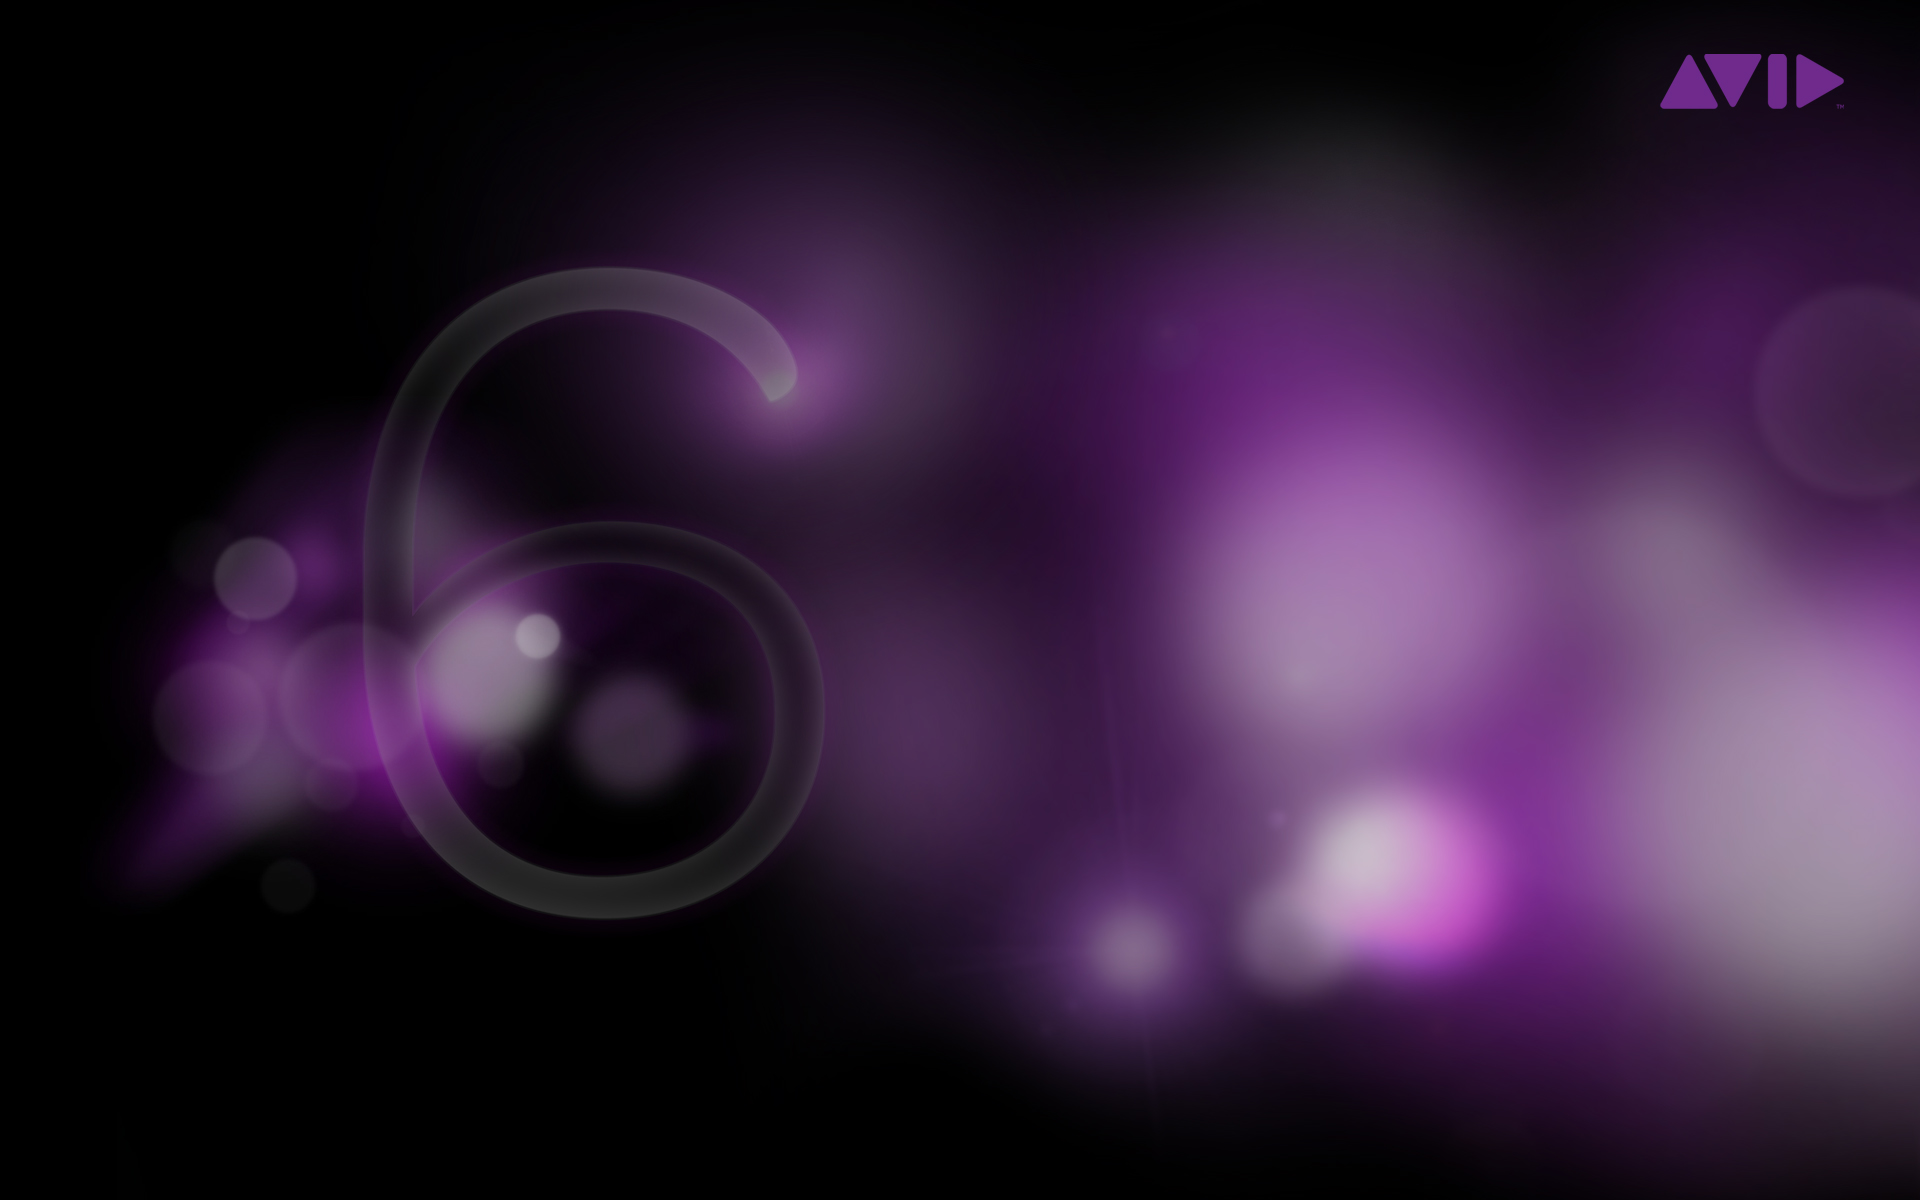 avid 6 wallpaper - photo #1